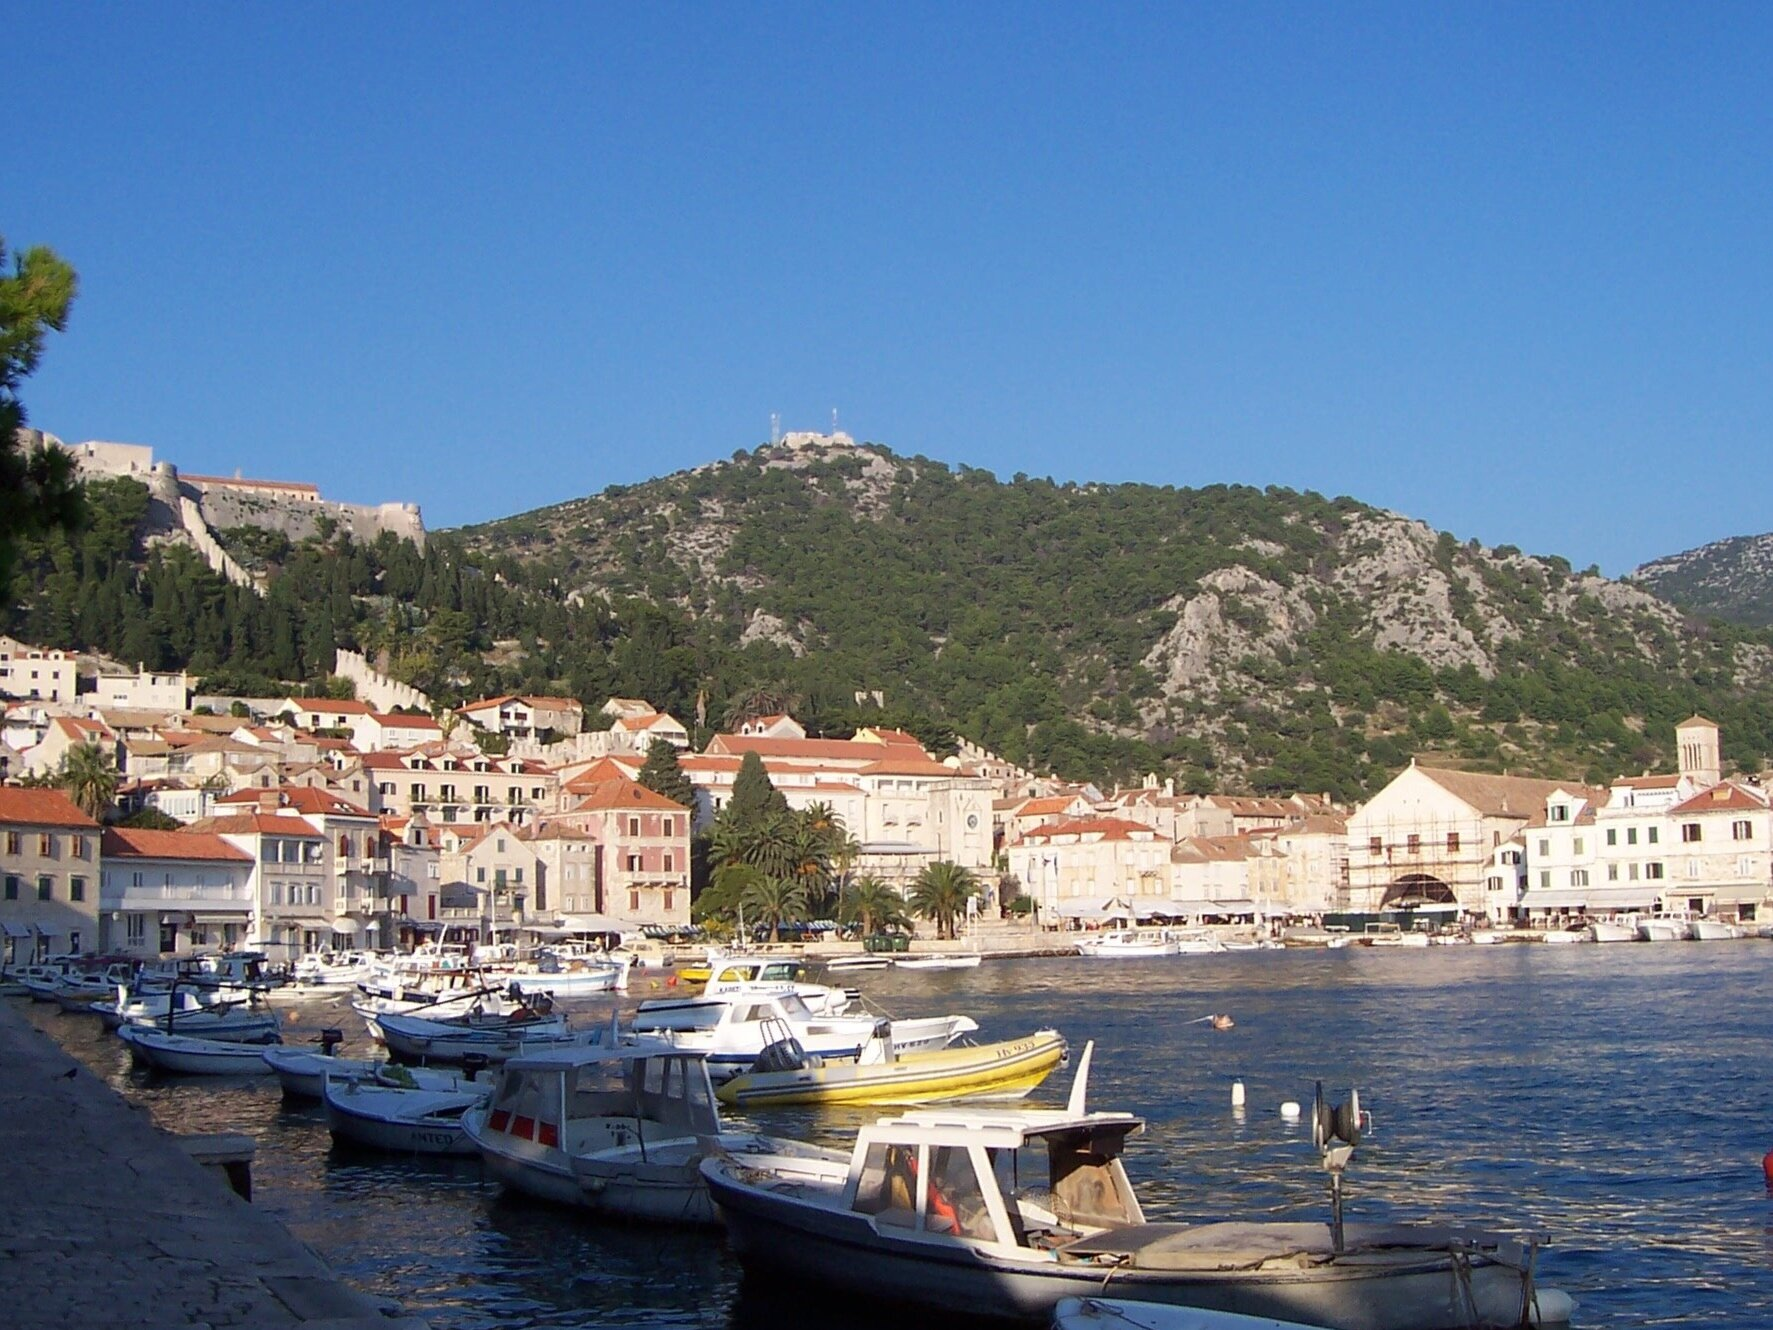 View of Hvar Arsenal from the harbour.